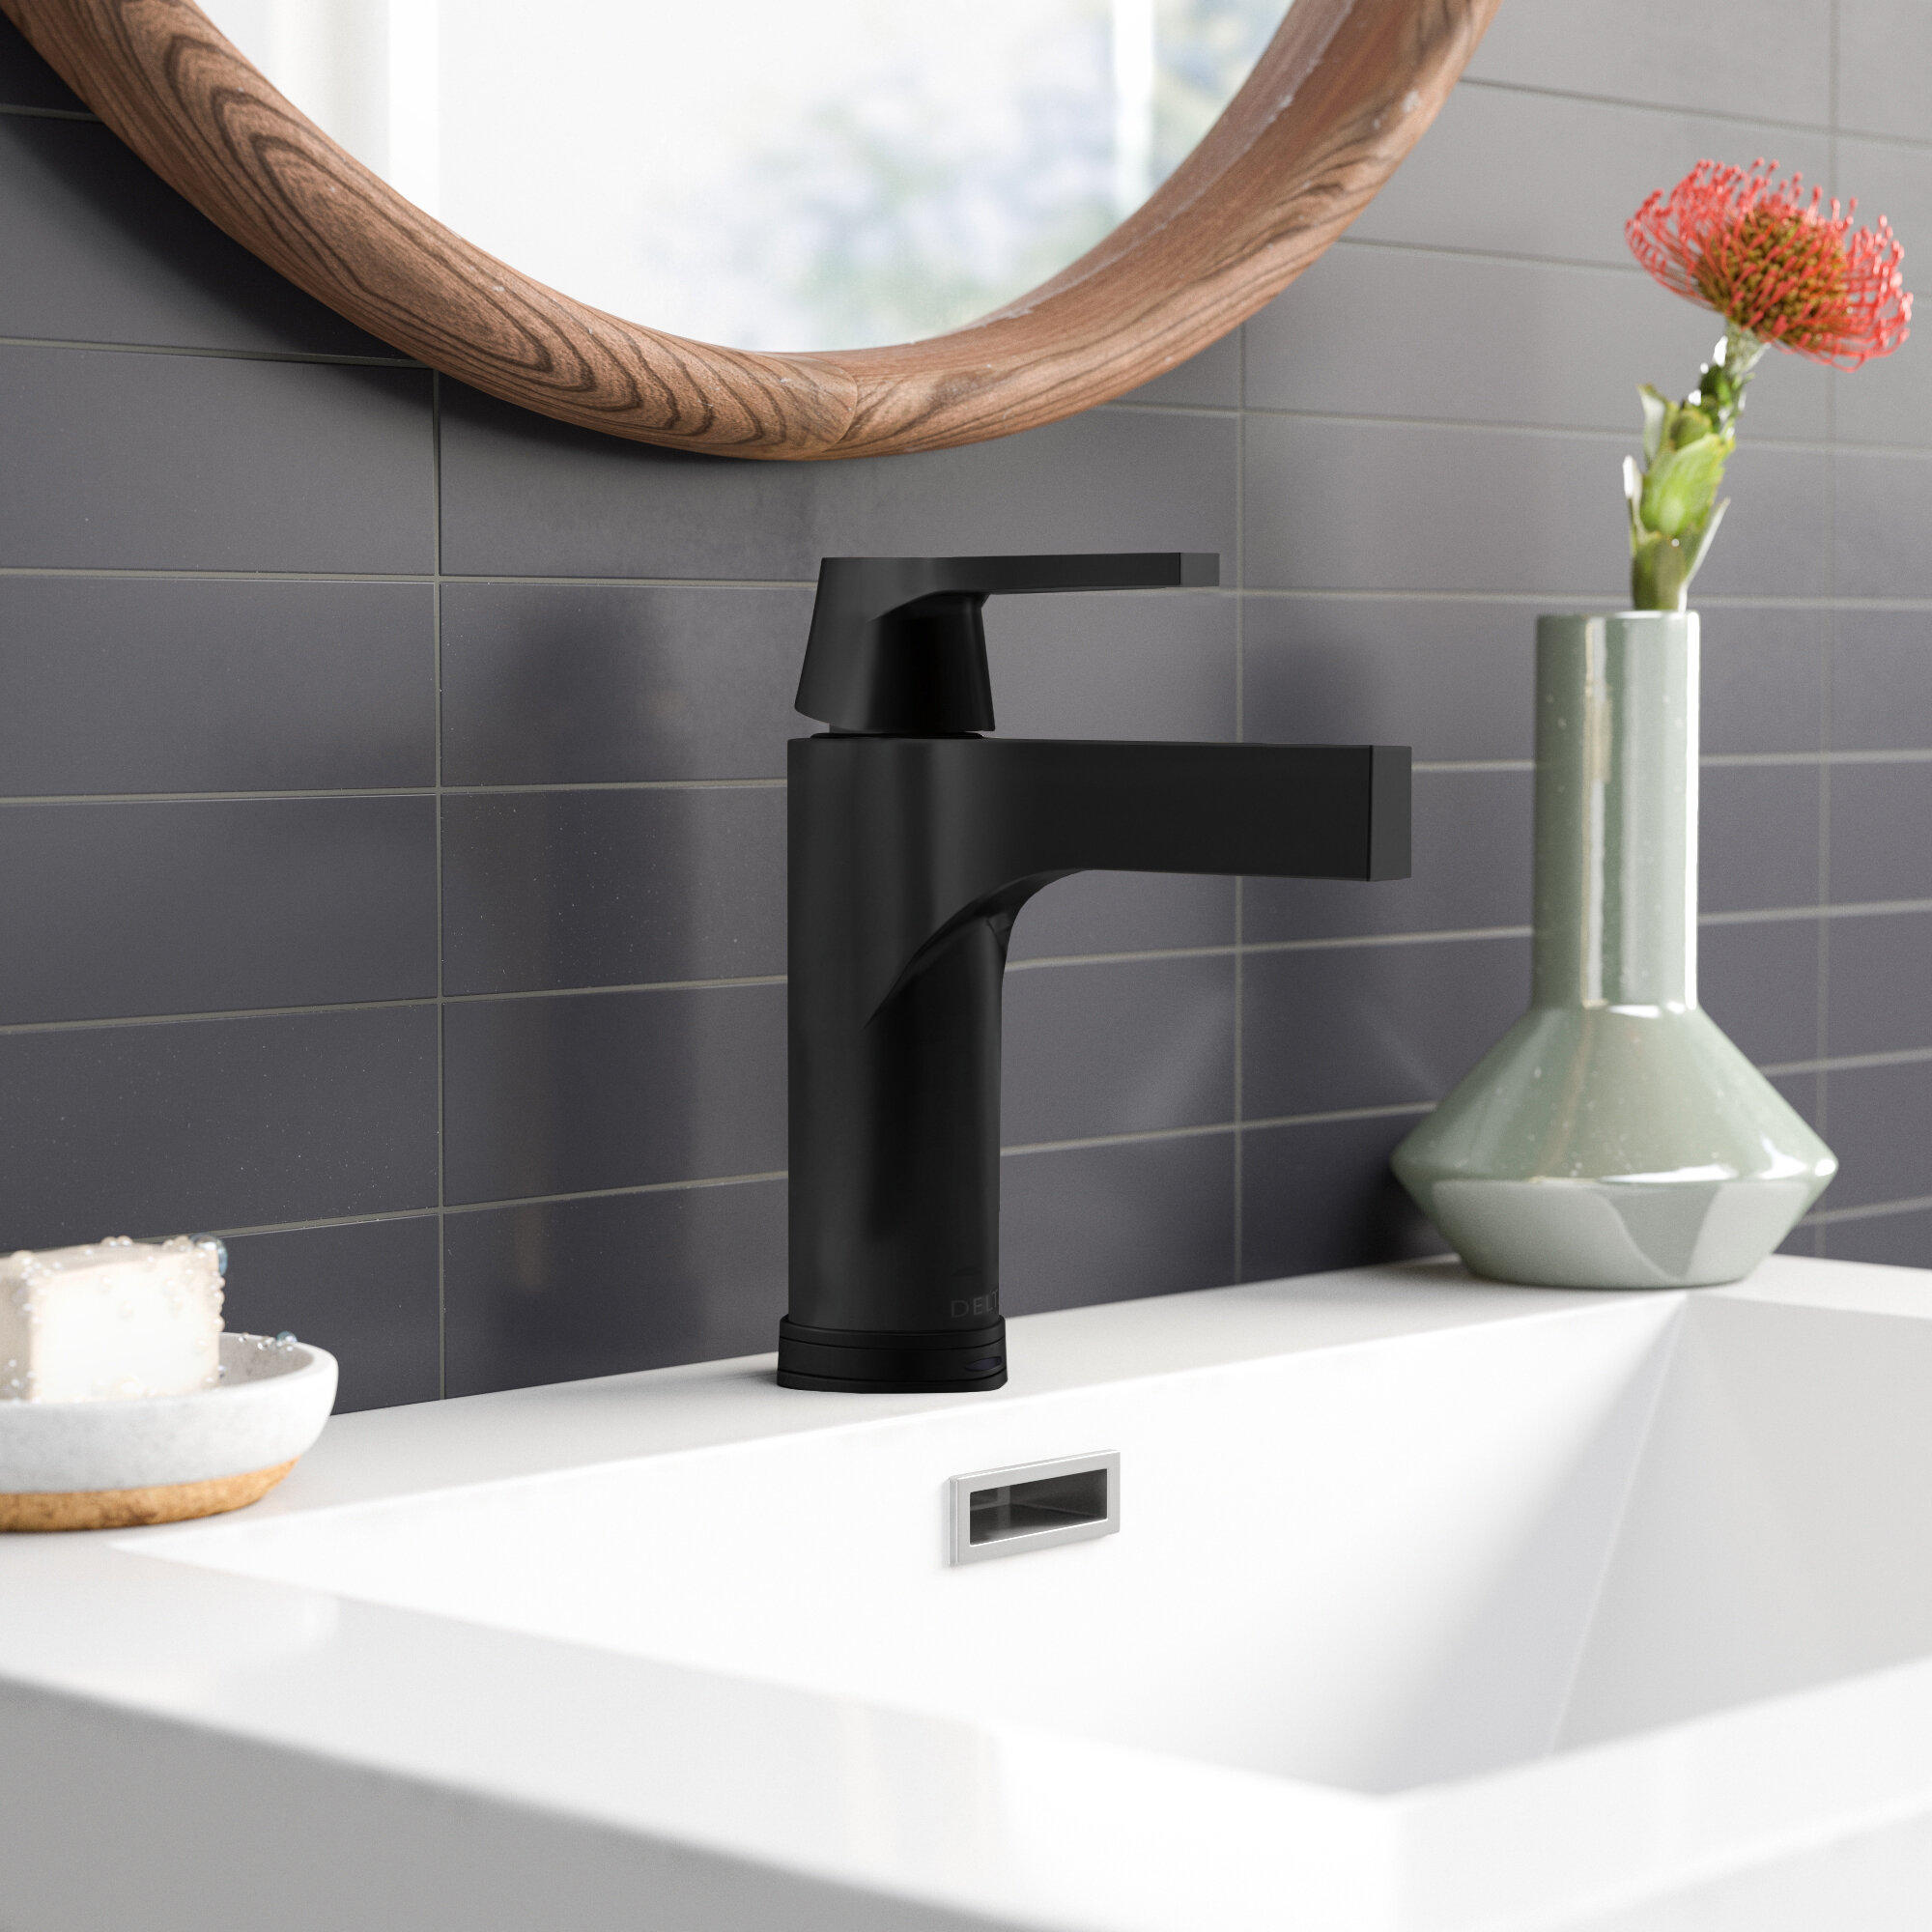 Zura Single Hole Bathroom Faucet With Drain Assembly And Diamond Seal Technology Reviews Allmodern